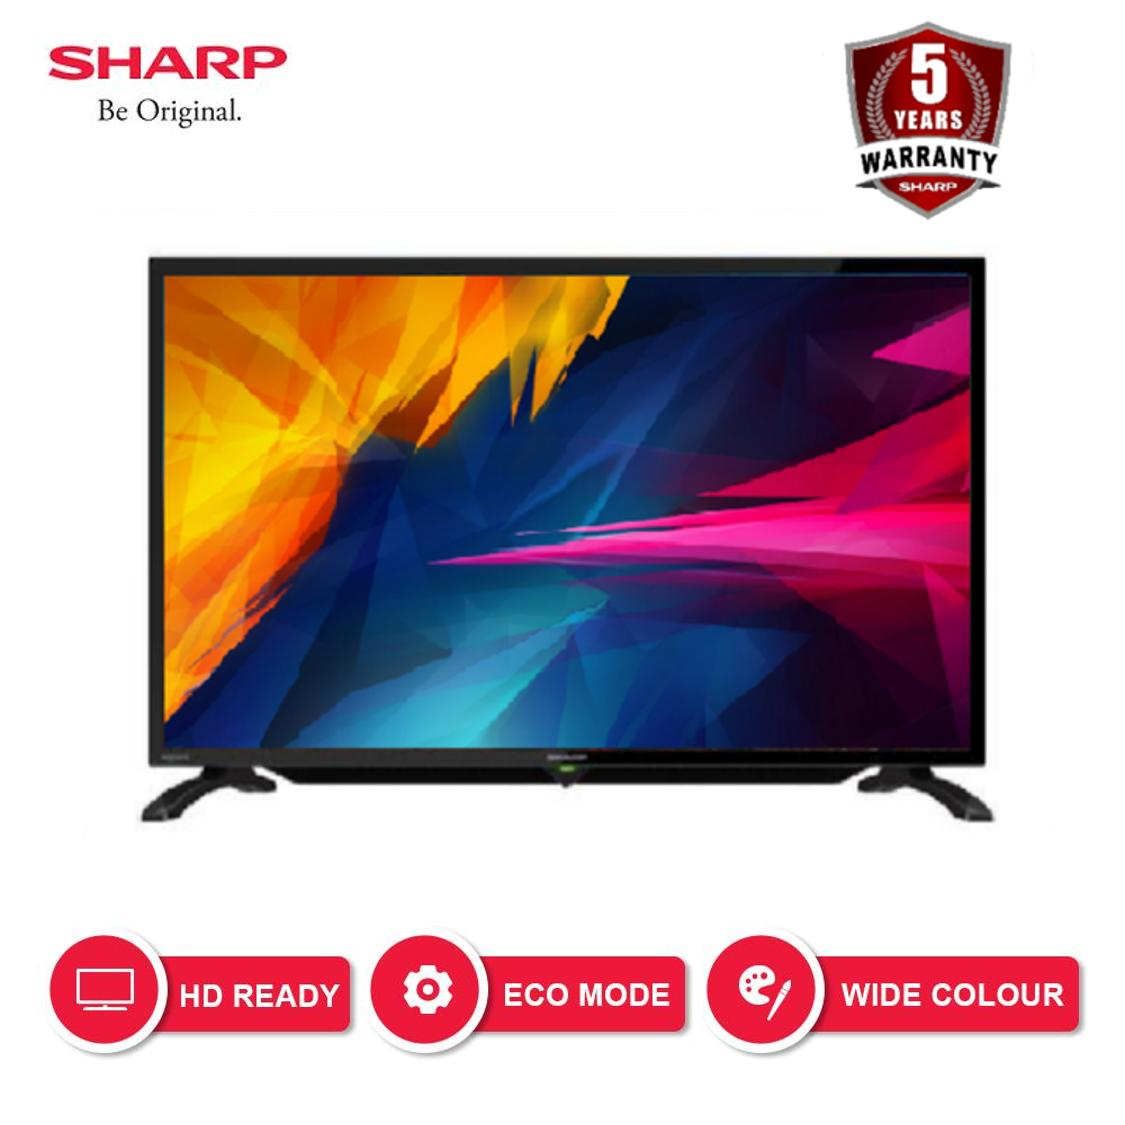 [GRATIS ONGKIR] Sharp 32 inch LED HD USB TV - Hitam (Model 2T-C32BA1i)